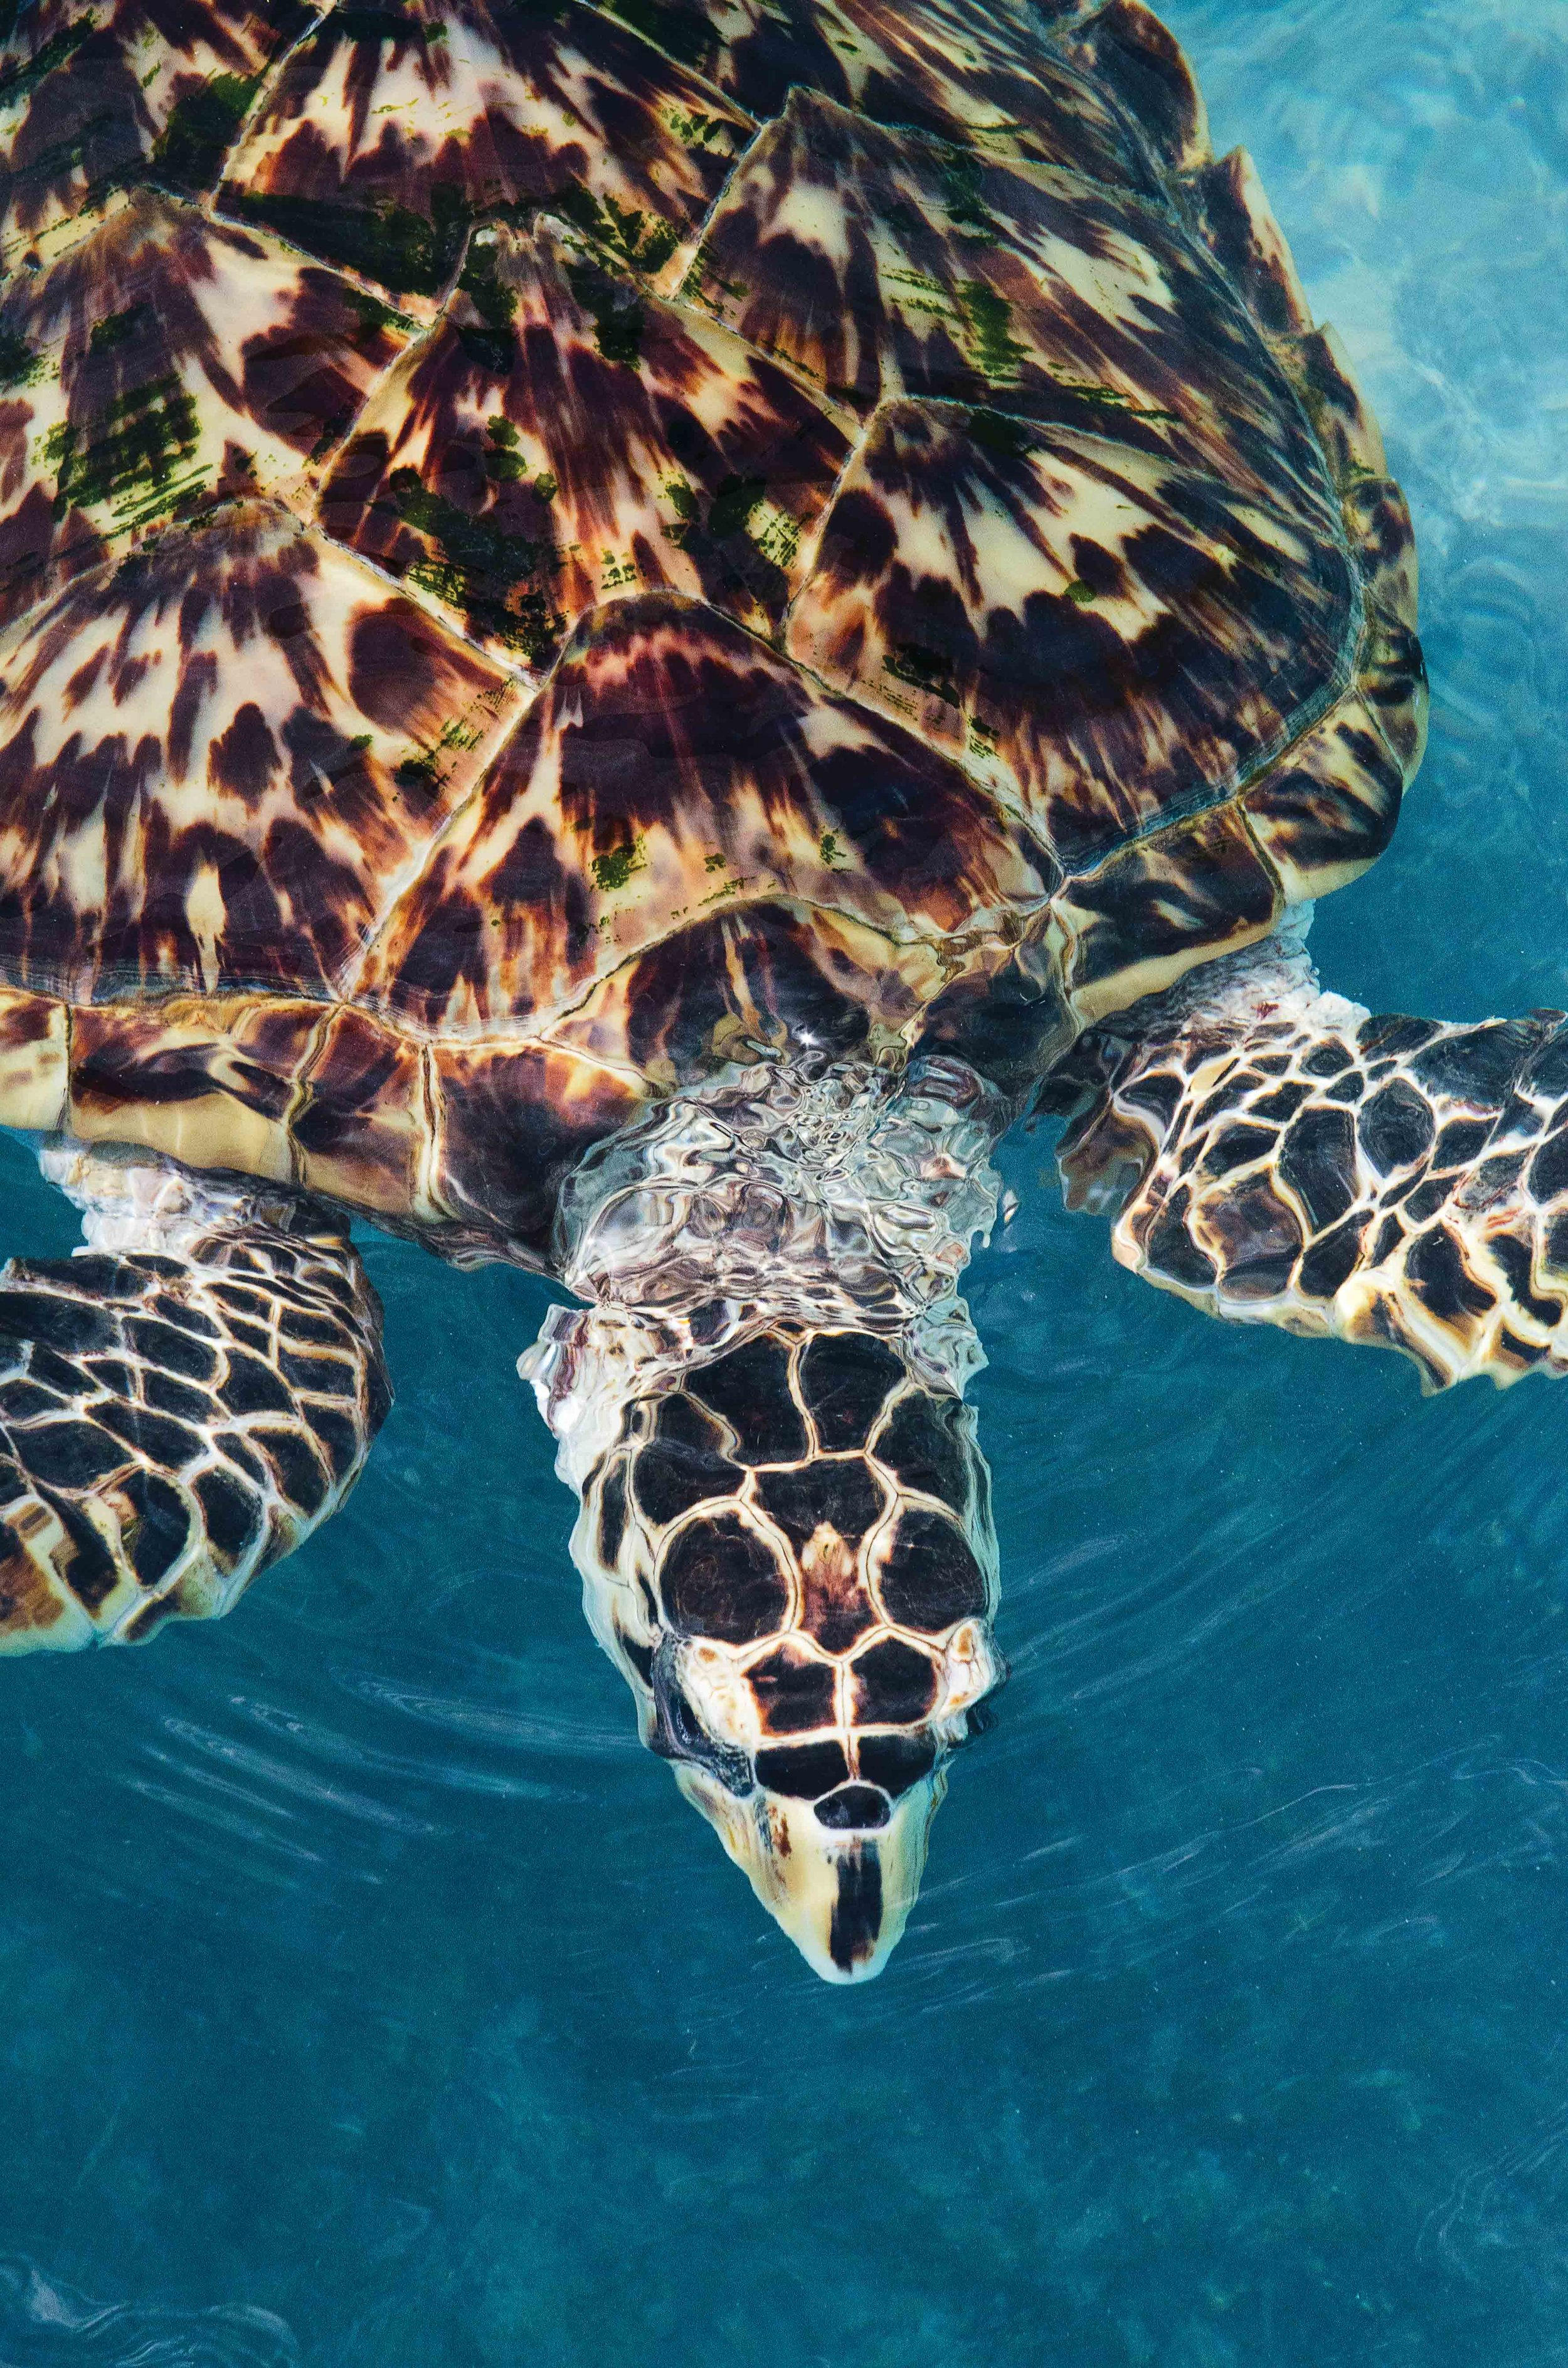 The hawksbill turtle's beautiful shell has been a precious commodity for centuries, contributing to the species' global decline. © PETE OXFORD